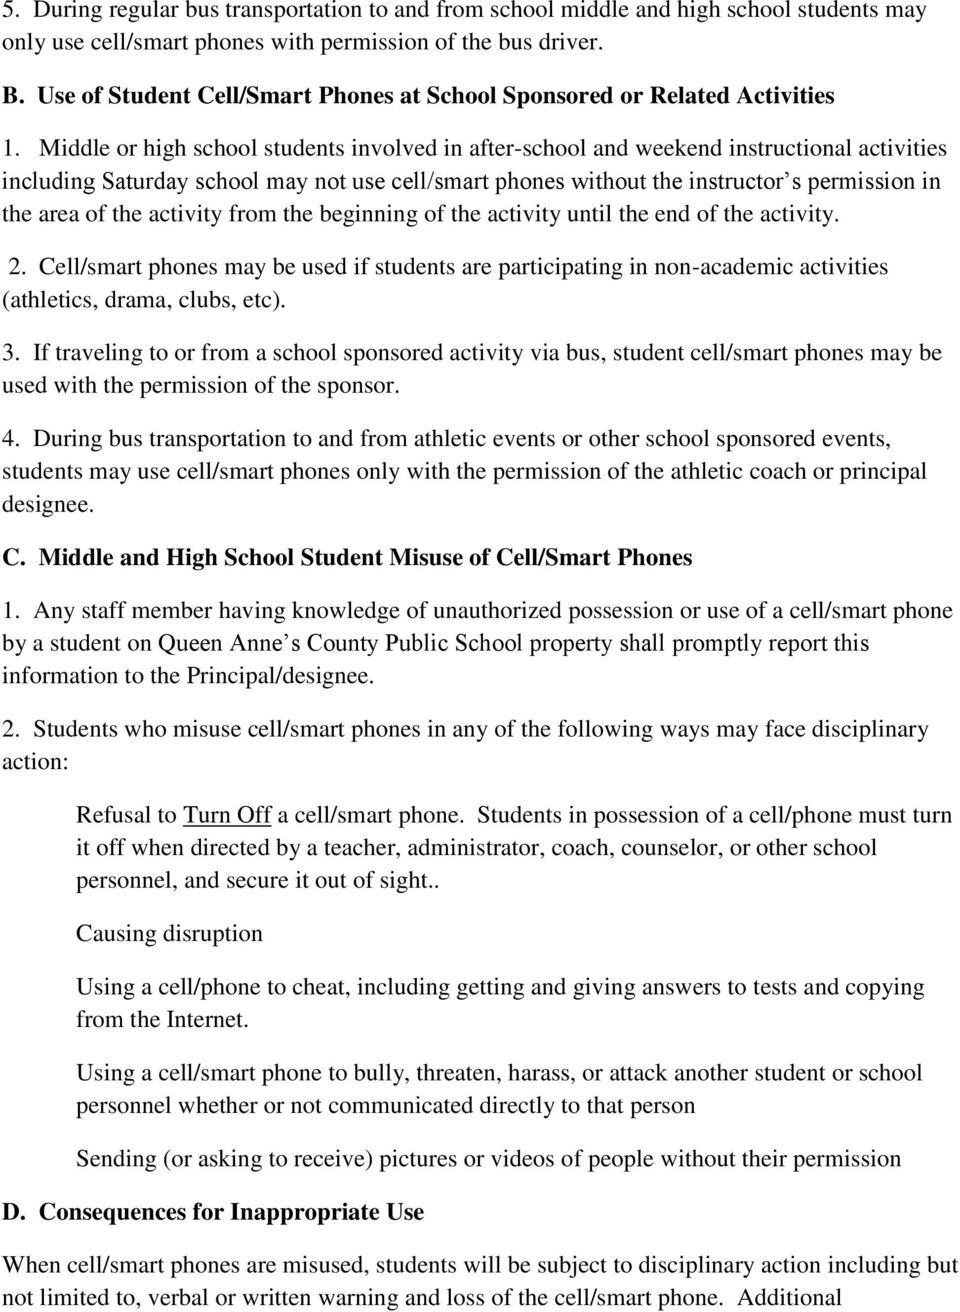 Middle or high school students involved in after-school and weekend instructional activities including Saturday school may not use cell/smart phones without the instructor s permission in the area of